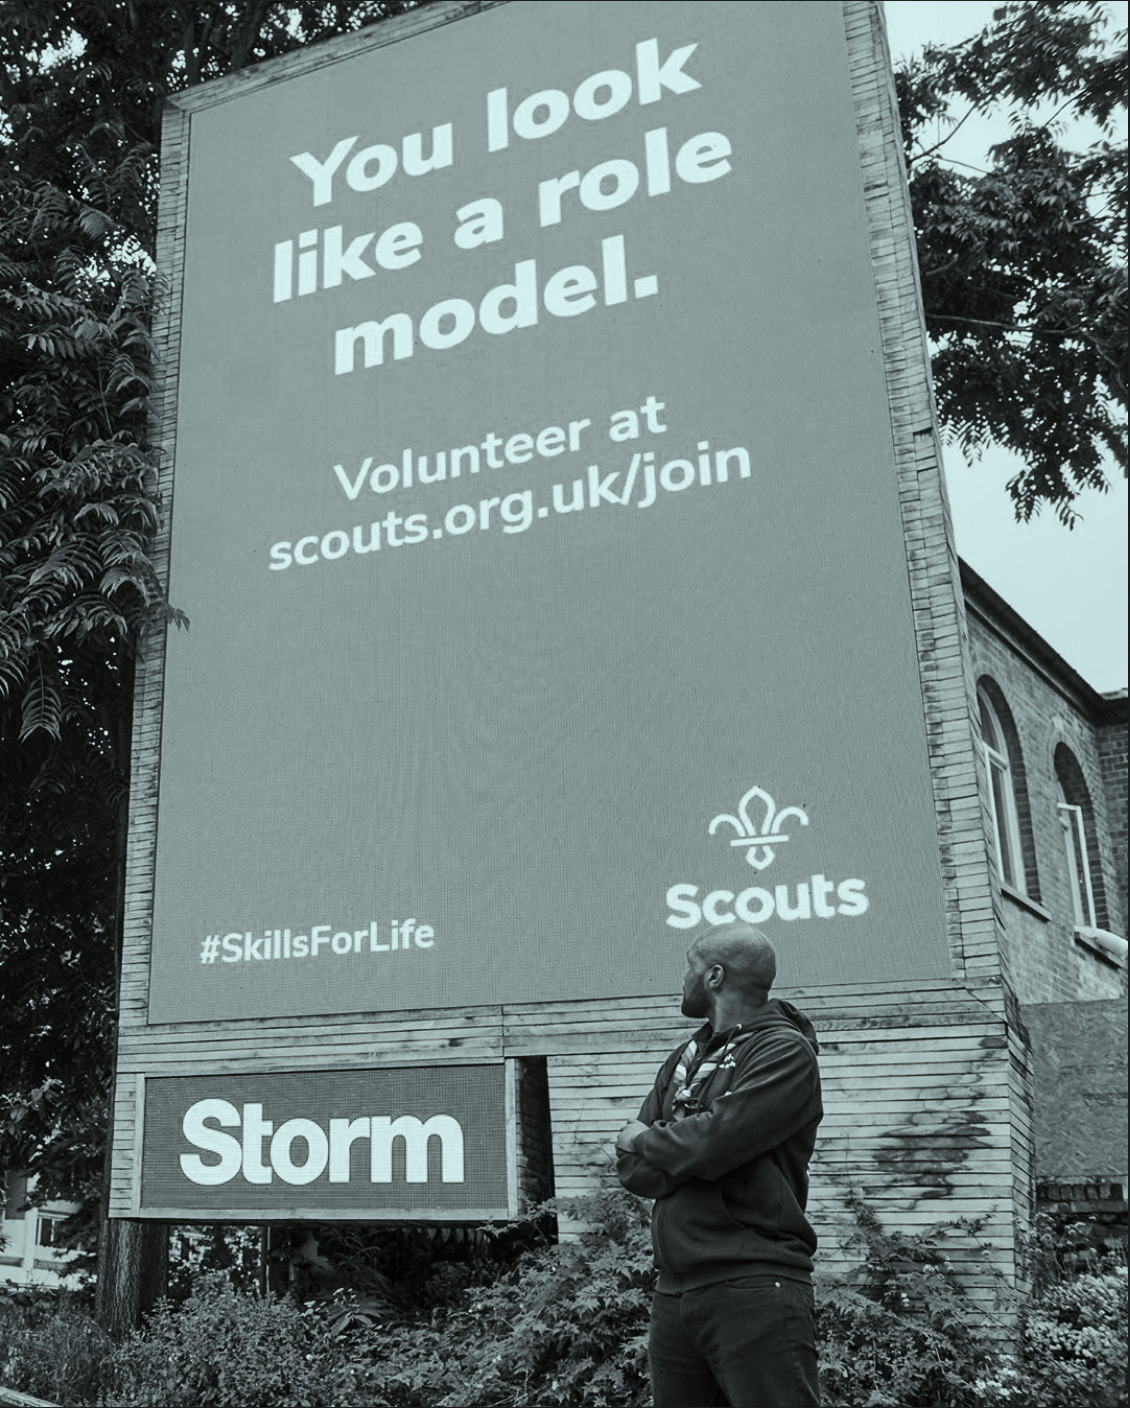 Scouts tone of voice: you look like a role model